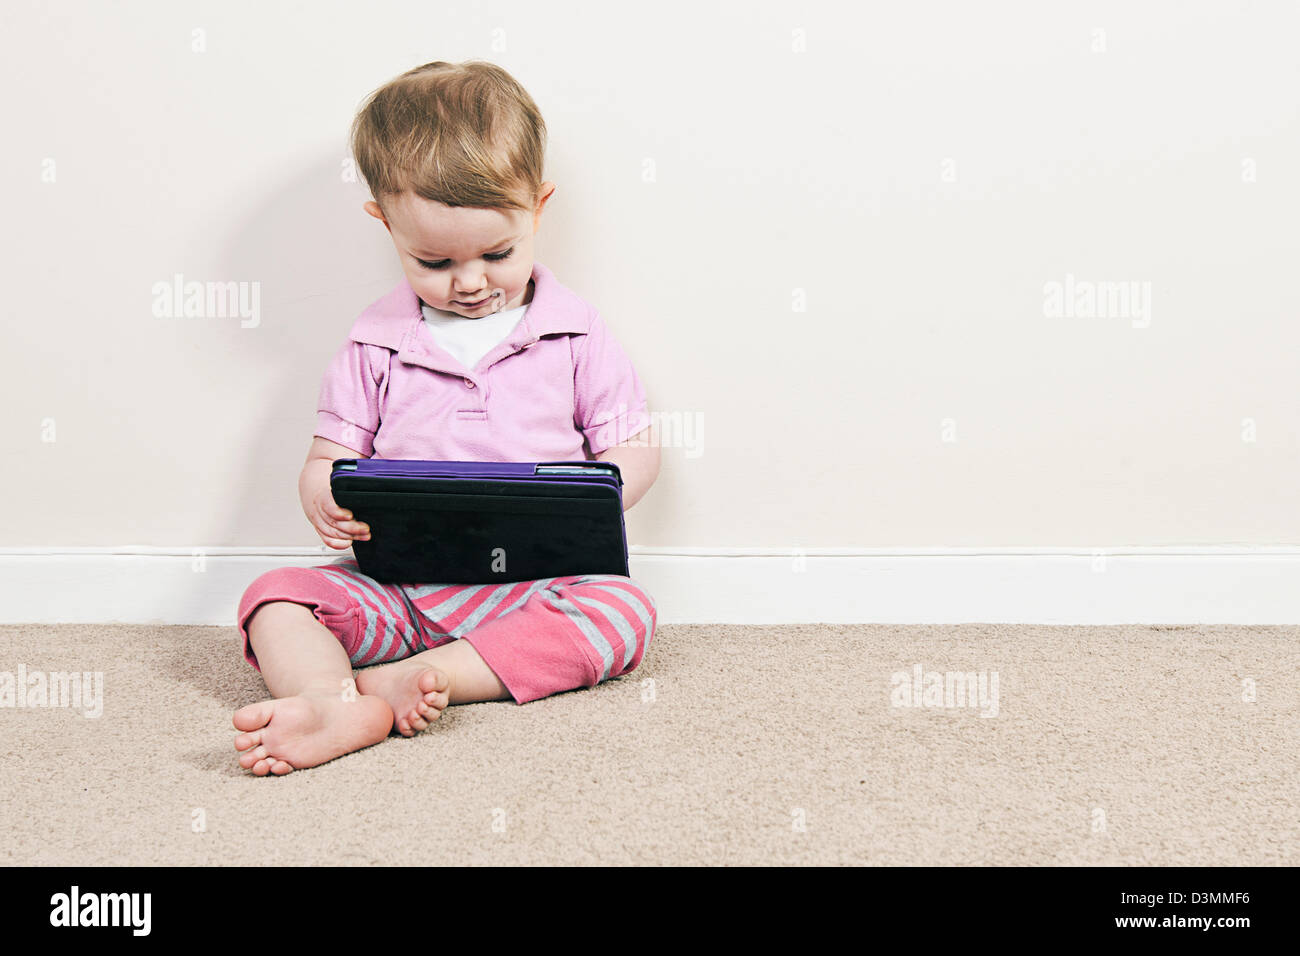 Baby Girl sur iPad Mini Photo Stock